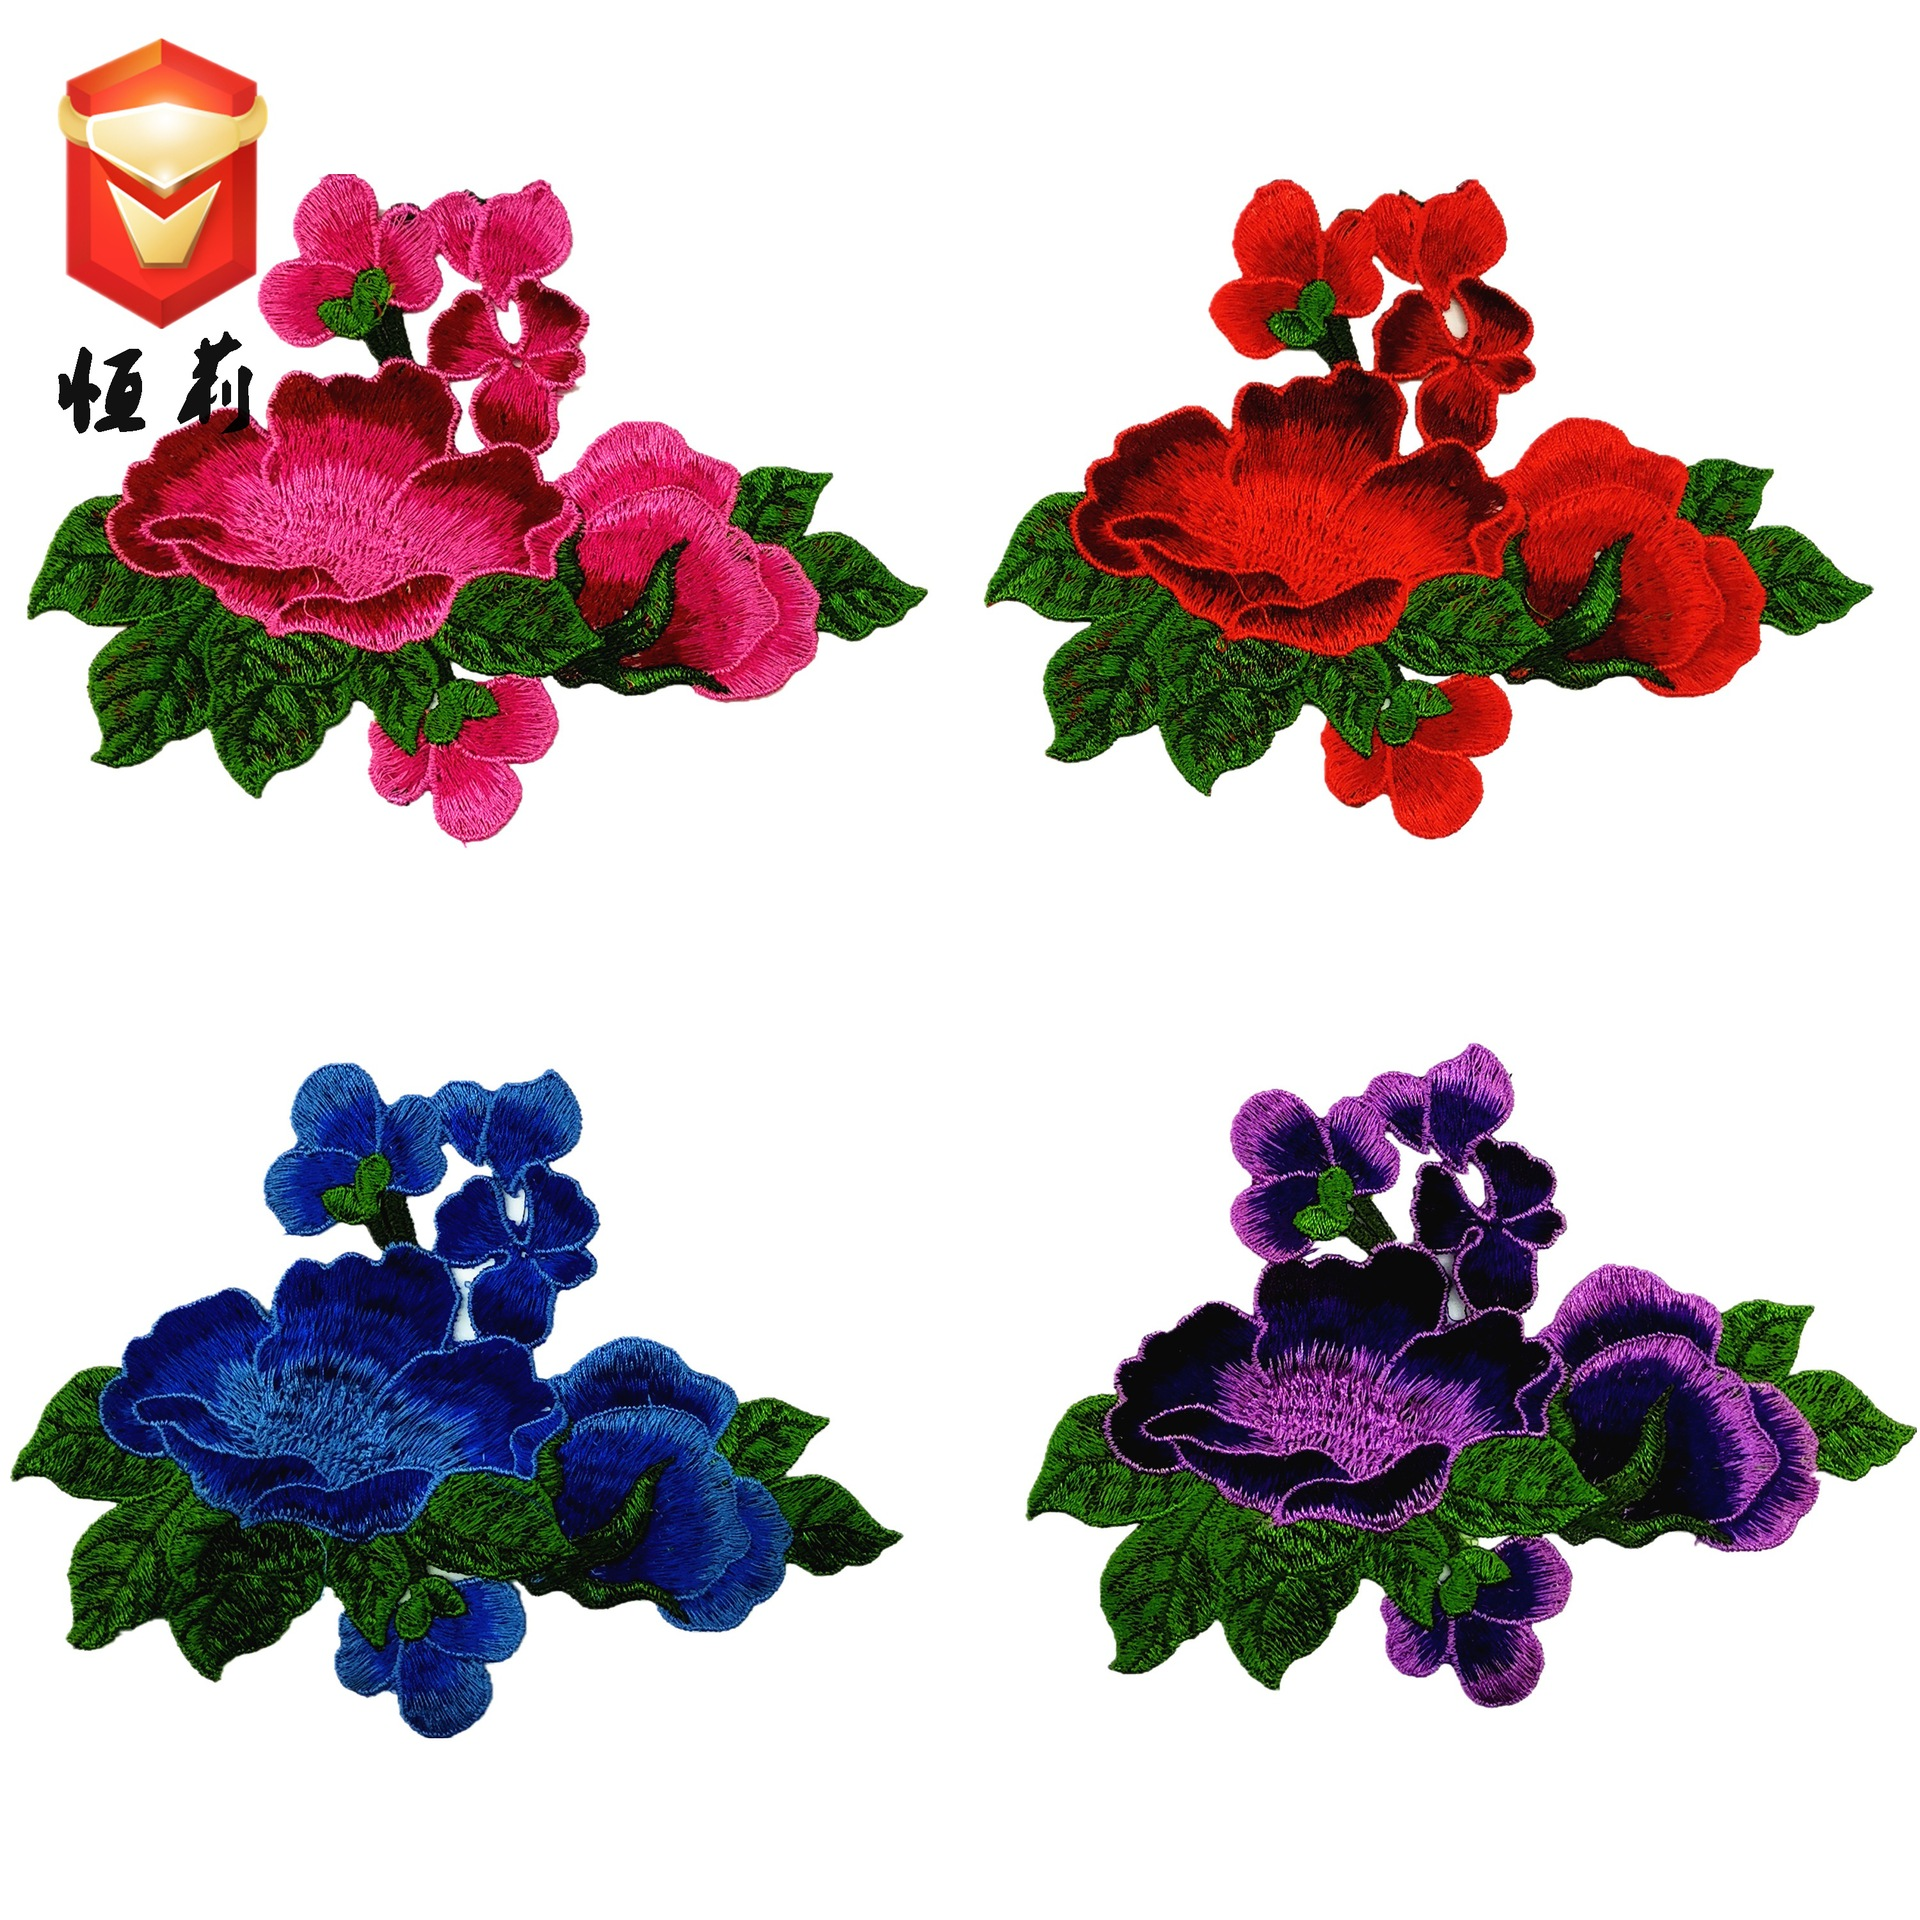 2019 New Fashion DIY Applique Water Soluble Embroidery  Costume Decoration Colorful Decals Applique Accessories Patch